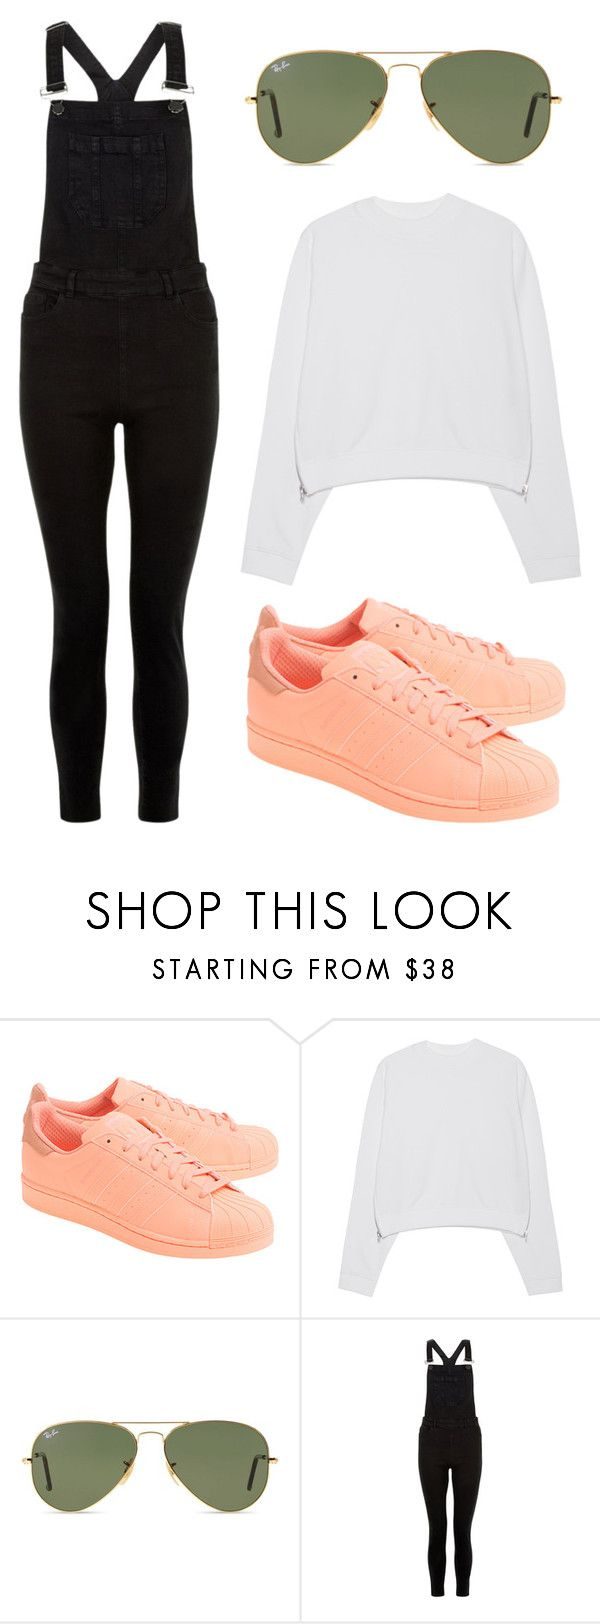 Sin título #39 by worldofalicin on Polyvore featuring moda, Acne Studios, New Look, adidas Originals and Ray-Ban